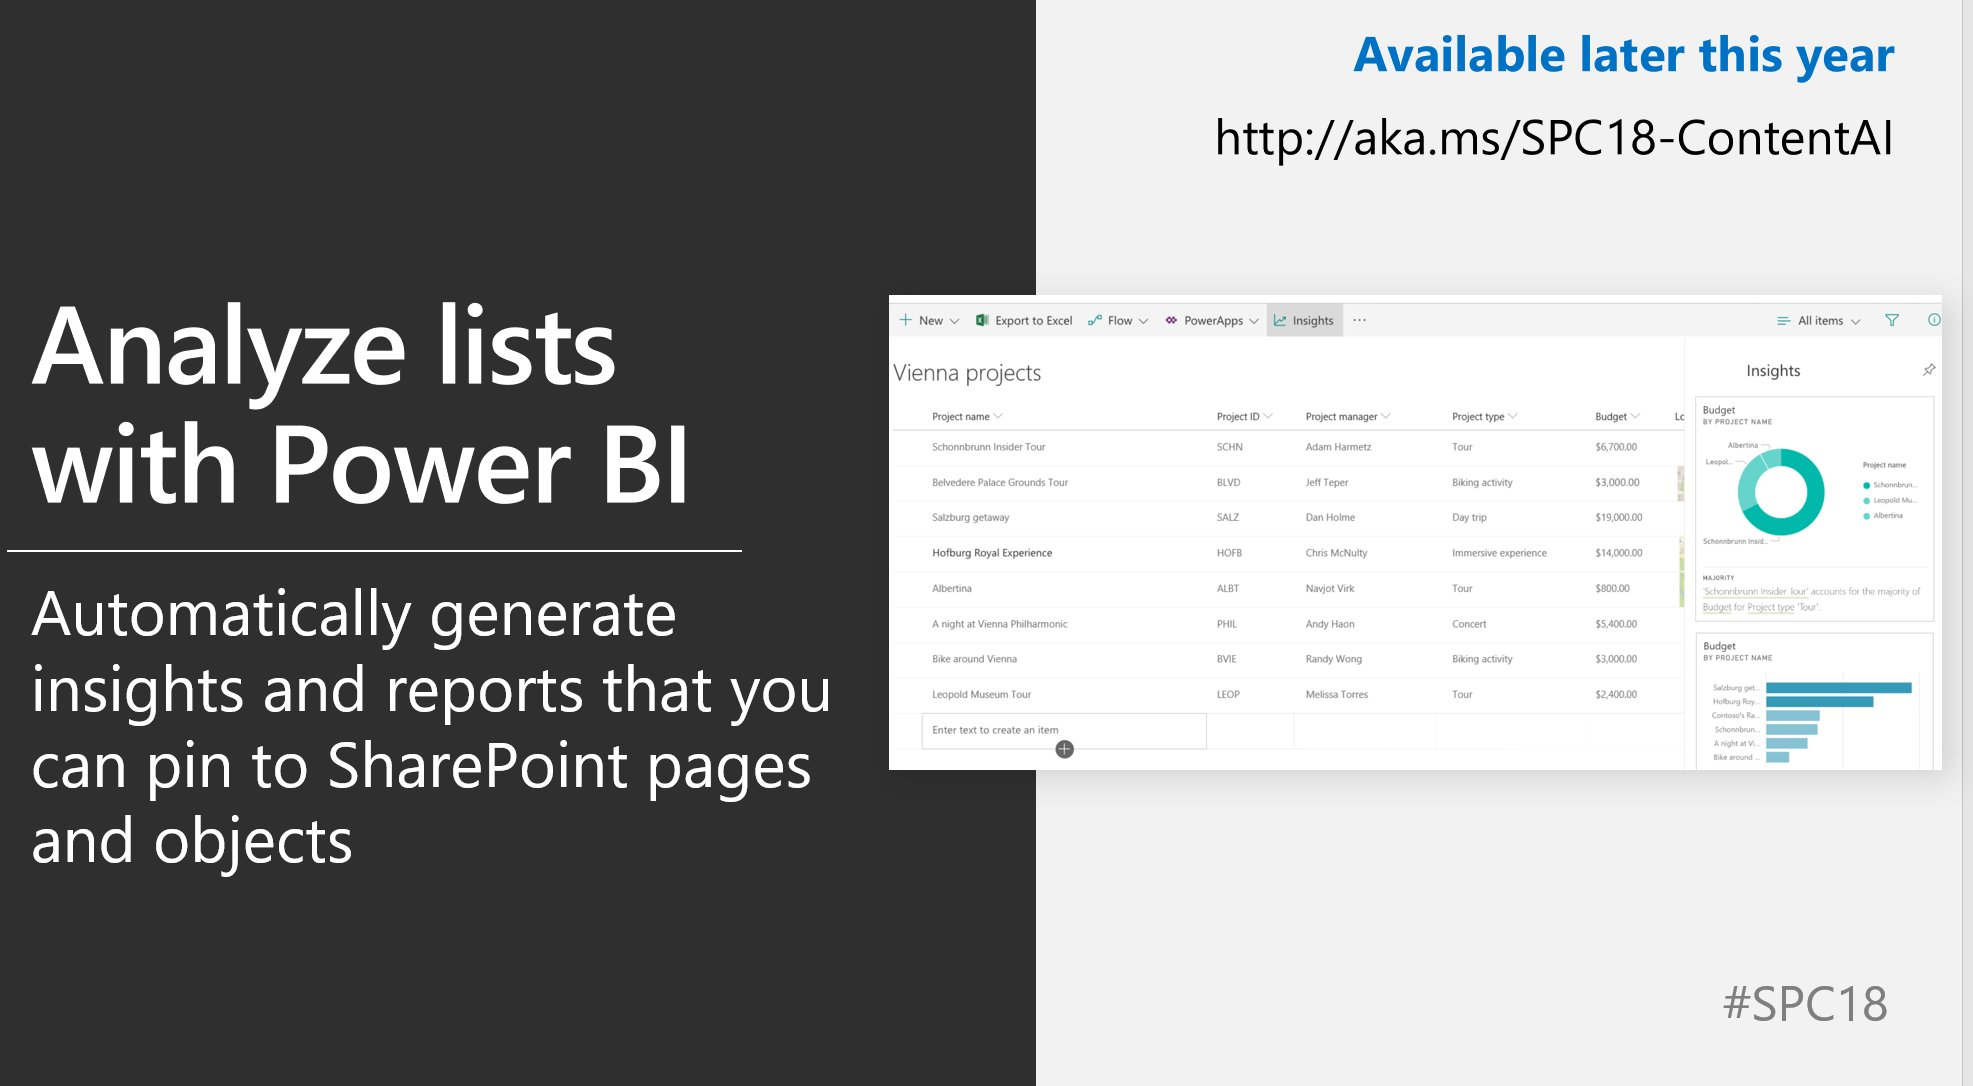 [Announcing] Automatically analyze #SharePoint lists  with @PowerBI. https://t.co/cvkRd9XOXz #SPC18 https://t.co/wYKdMulYOR